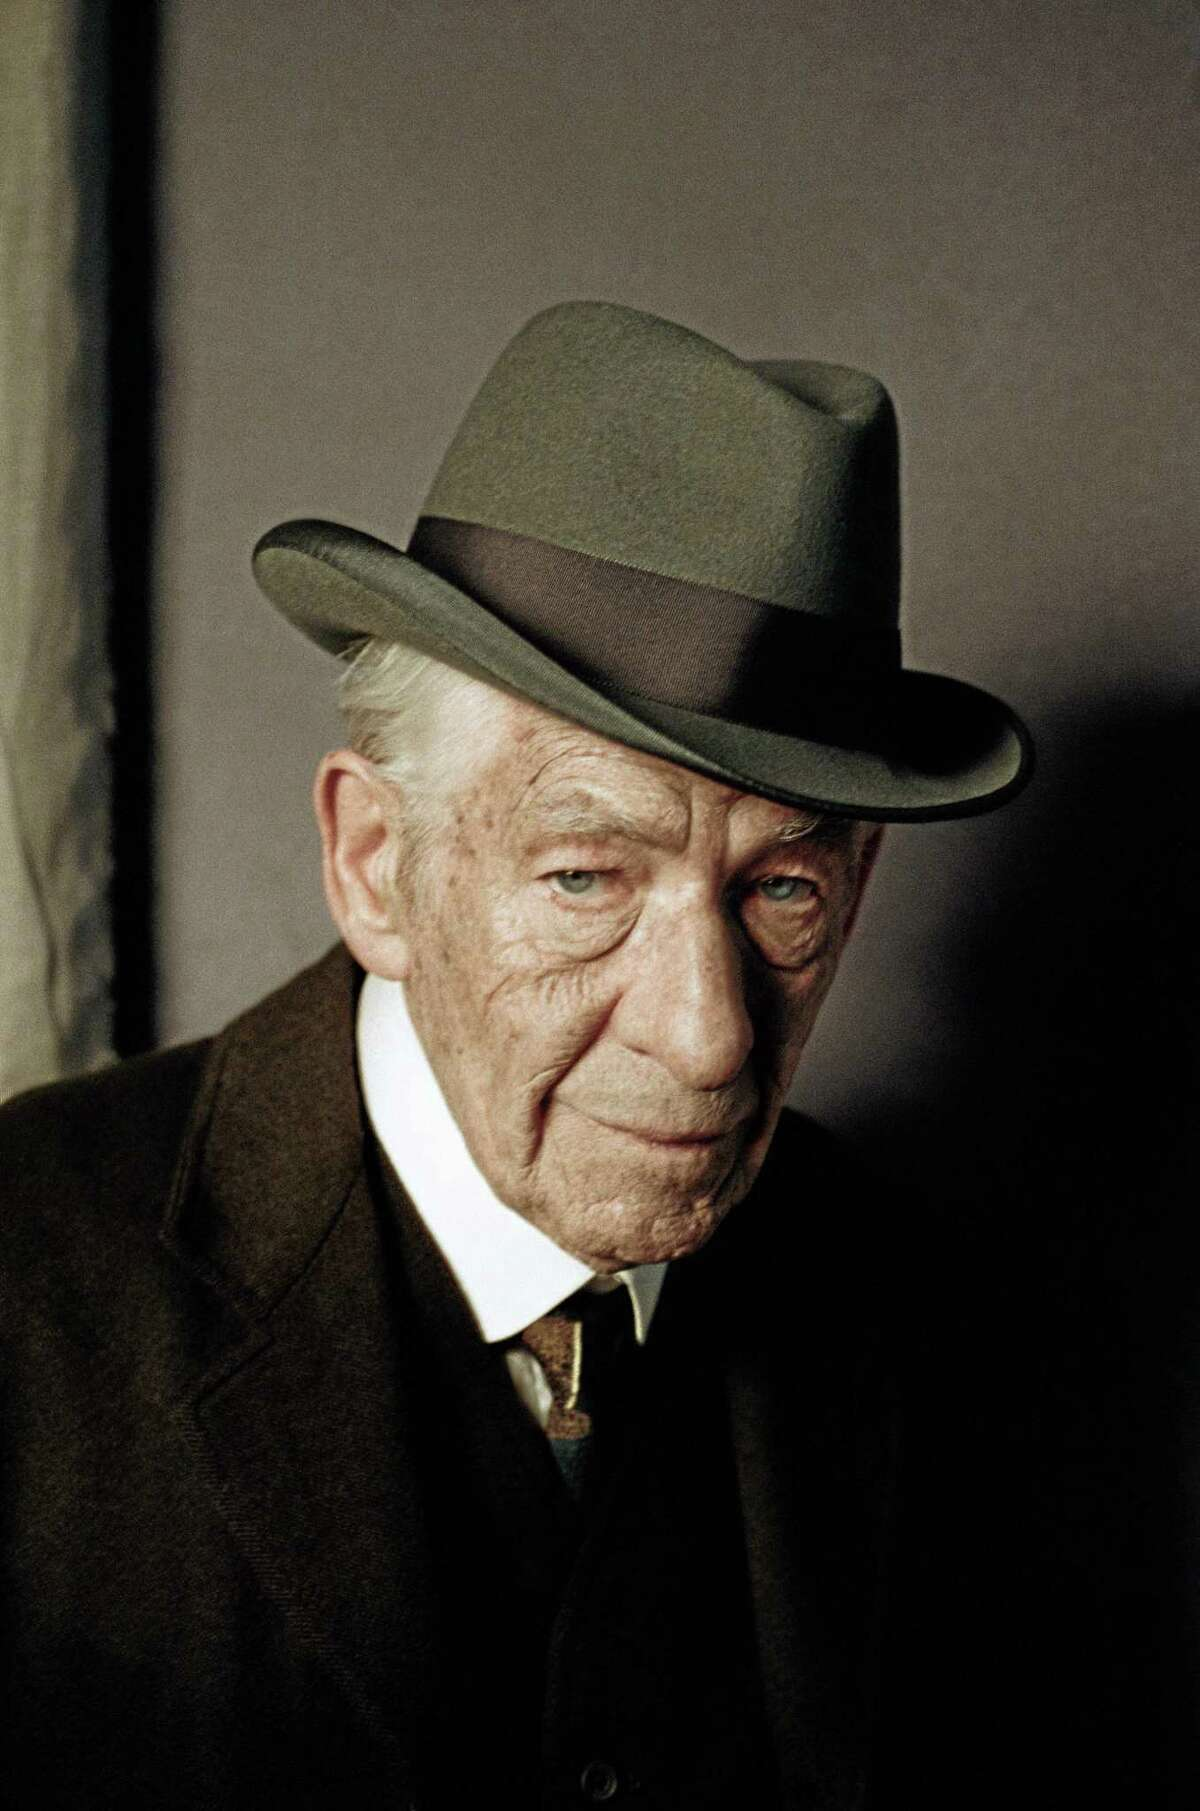 """In this undated photo released by See-Saw Films, British actor Ian McKellen poses for a photograph on the first day of filming for """"Mr. Homes"""", in which he portrays a 93-year-old Sherlock Holmes, London. Filming has begun on ìMr. Holmes,î which imagines the famous sleuth in his old age as a retiree living in seclusion by the sea. The movie, based on Mitch Cullinís novel ìA Slight Trick of the Mind,î sees the detective struggling with a failing memory and revisiting one final unresolved mystery. (AP Photo/Agatha A Nitecka, See-Saw Films)"""